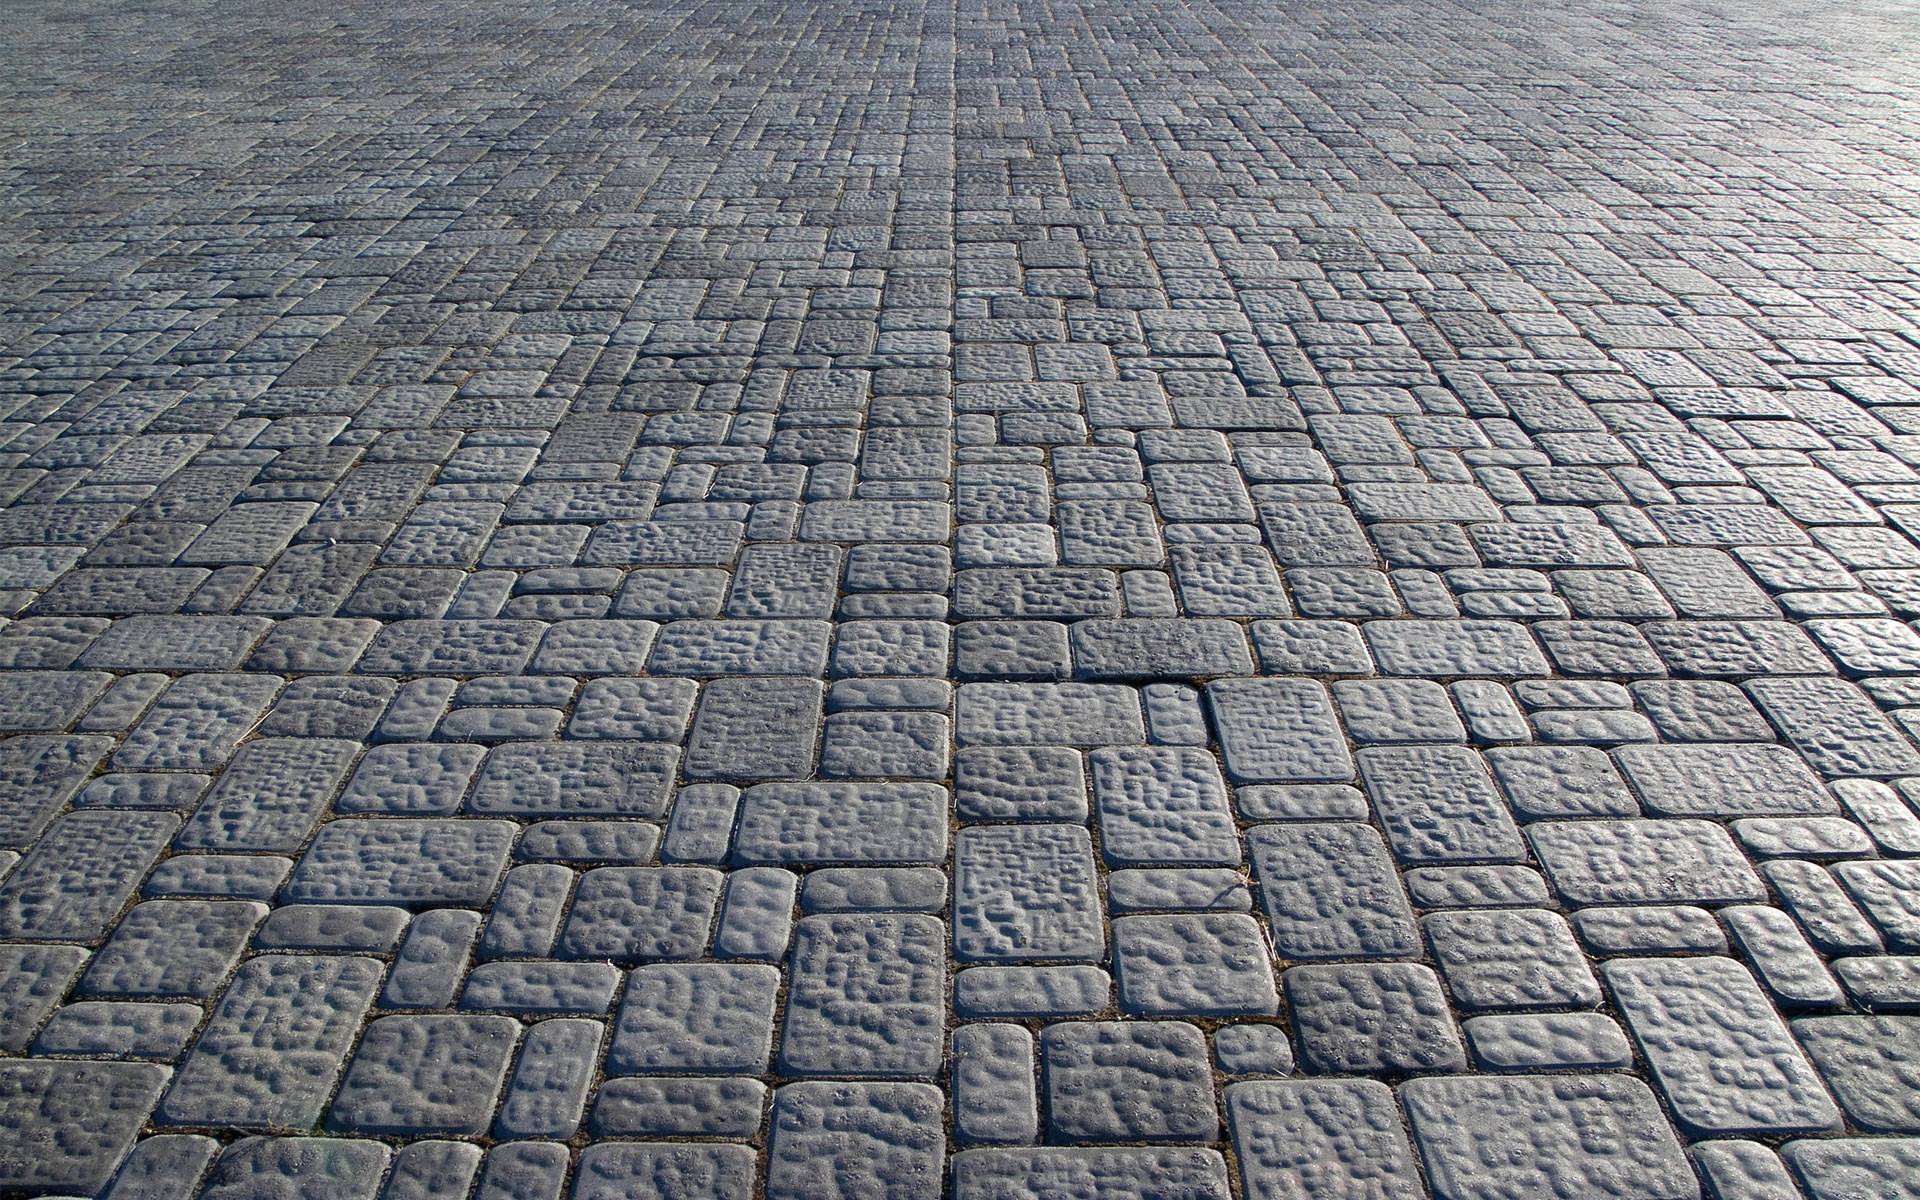 Pavement Wallpaper